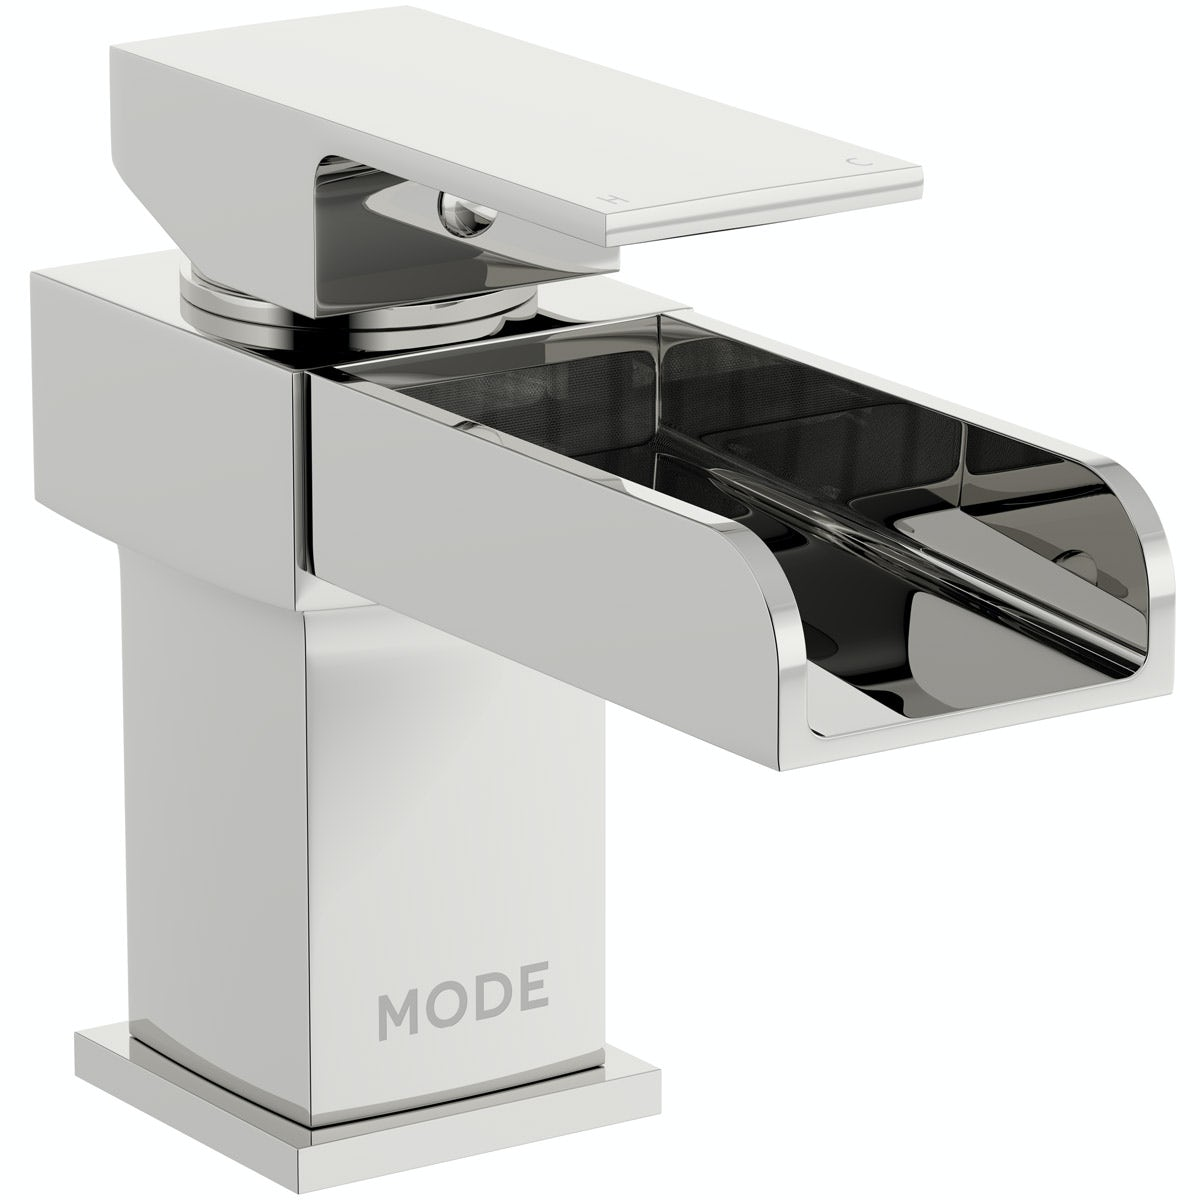 Mode Carter waterfall basin mixer tap